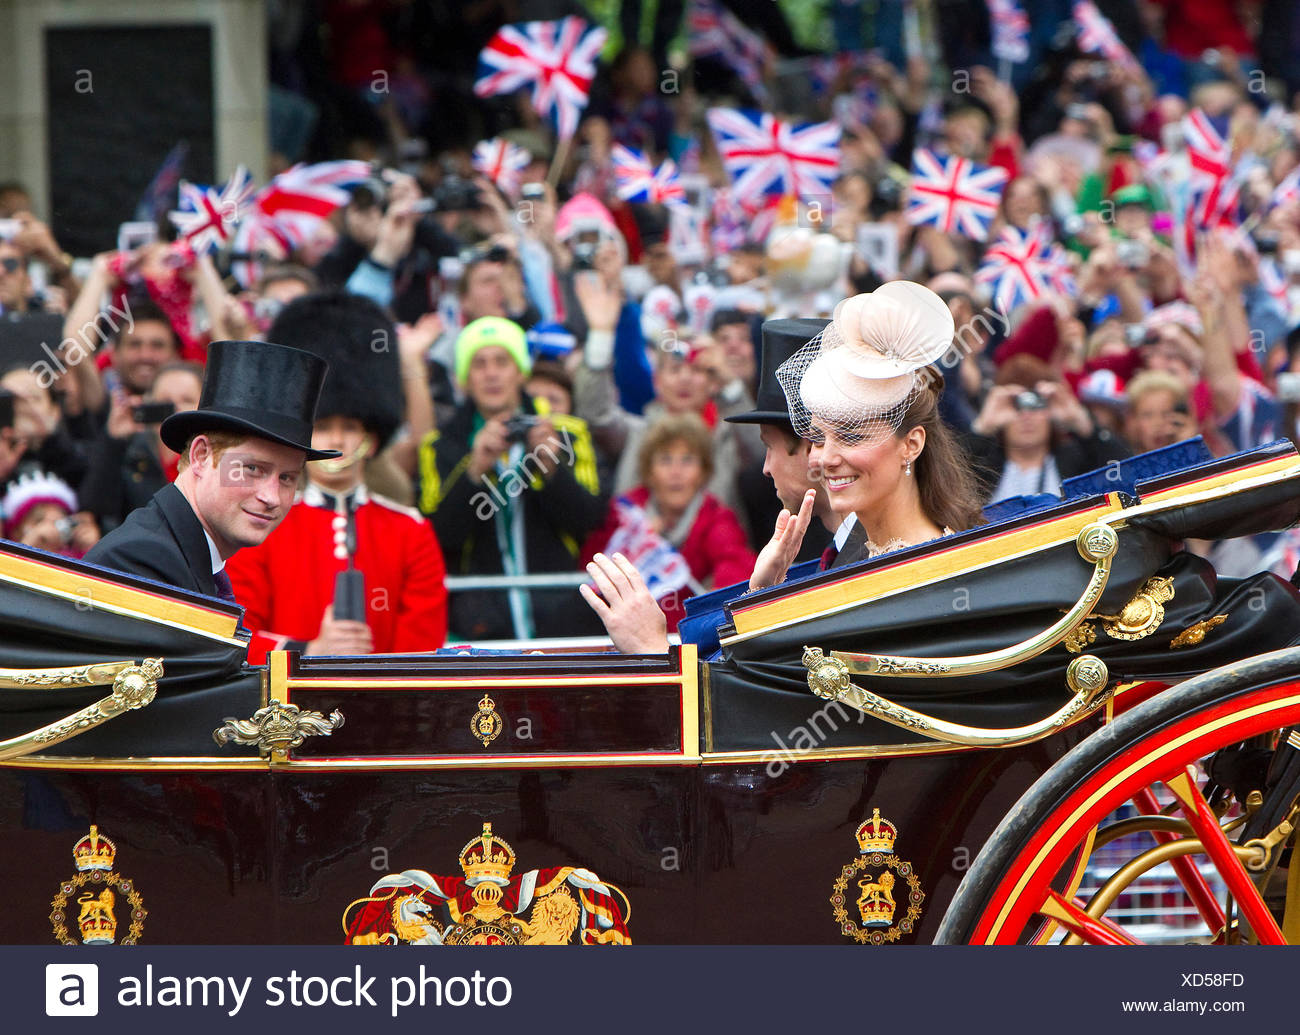 The Duchess of Cambridge with Prince William and  Prince Harry, riding down The Mall in an open carriage - Stock Image